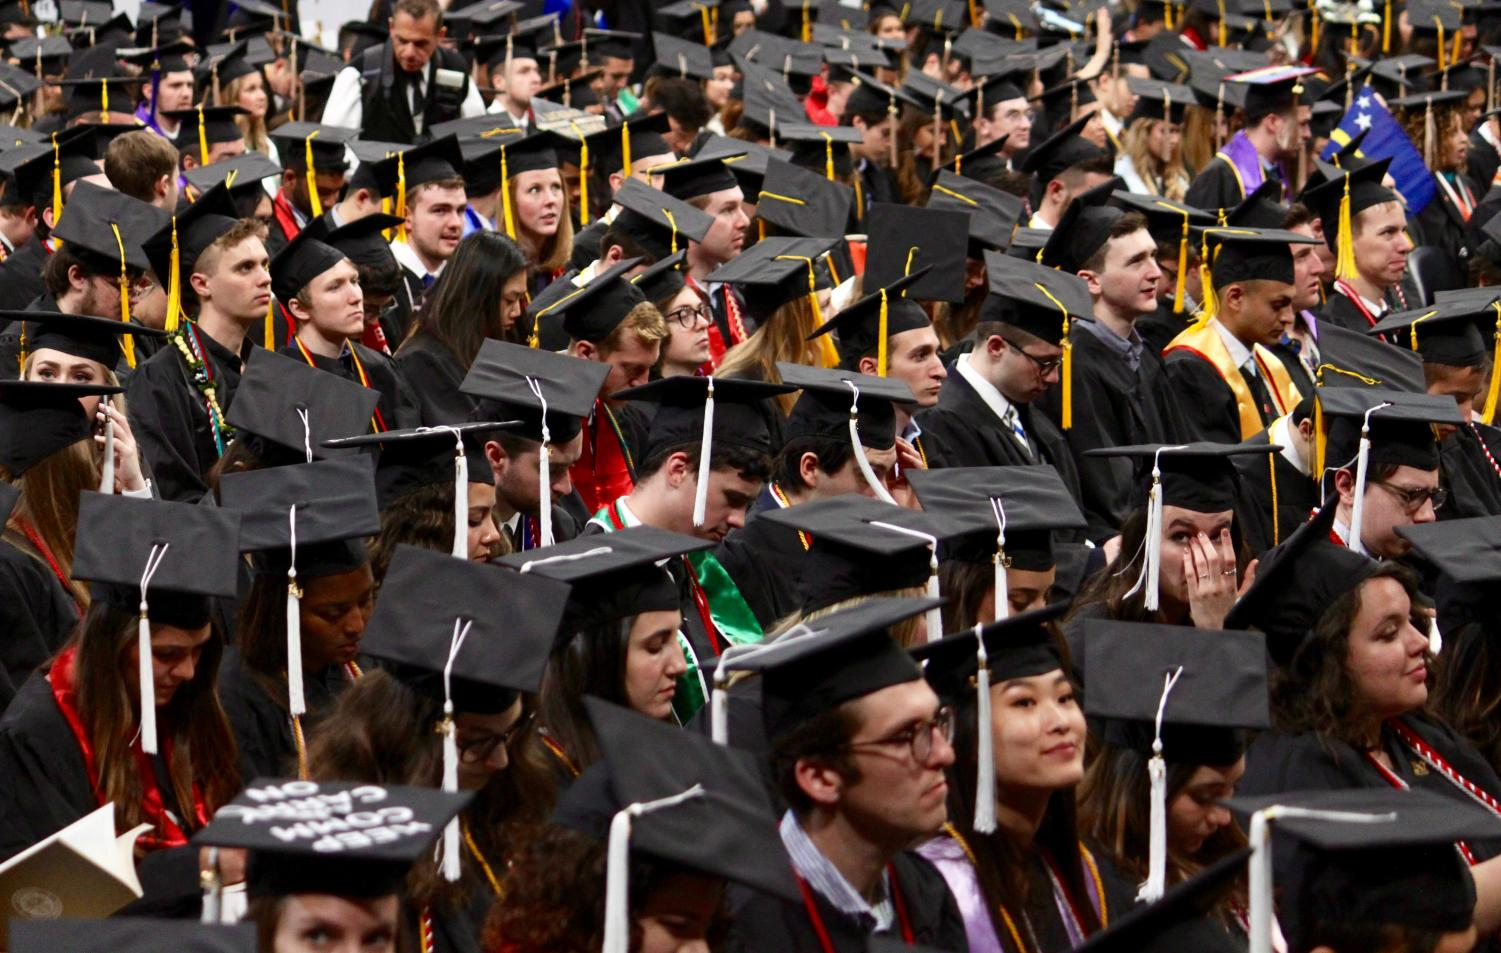 At the 117th commencement in Northeastern's history, 4,000 students received diplomas.